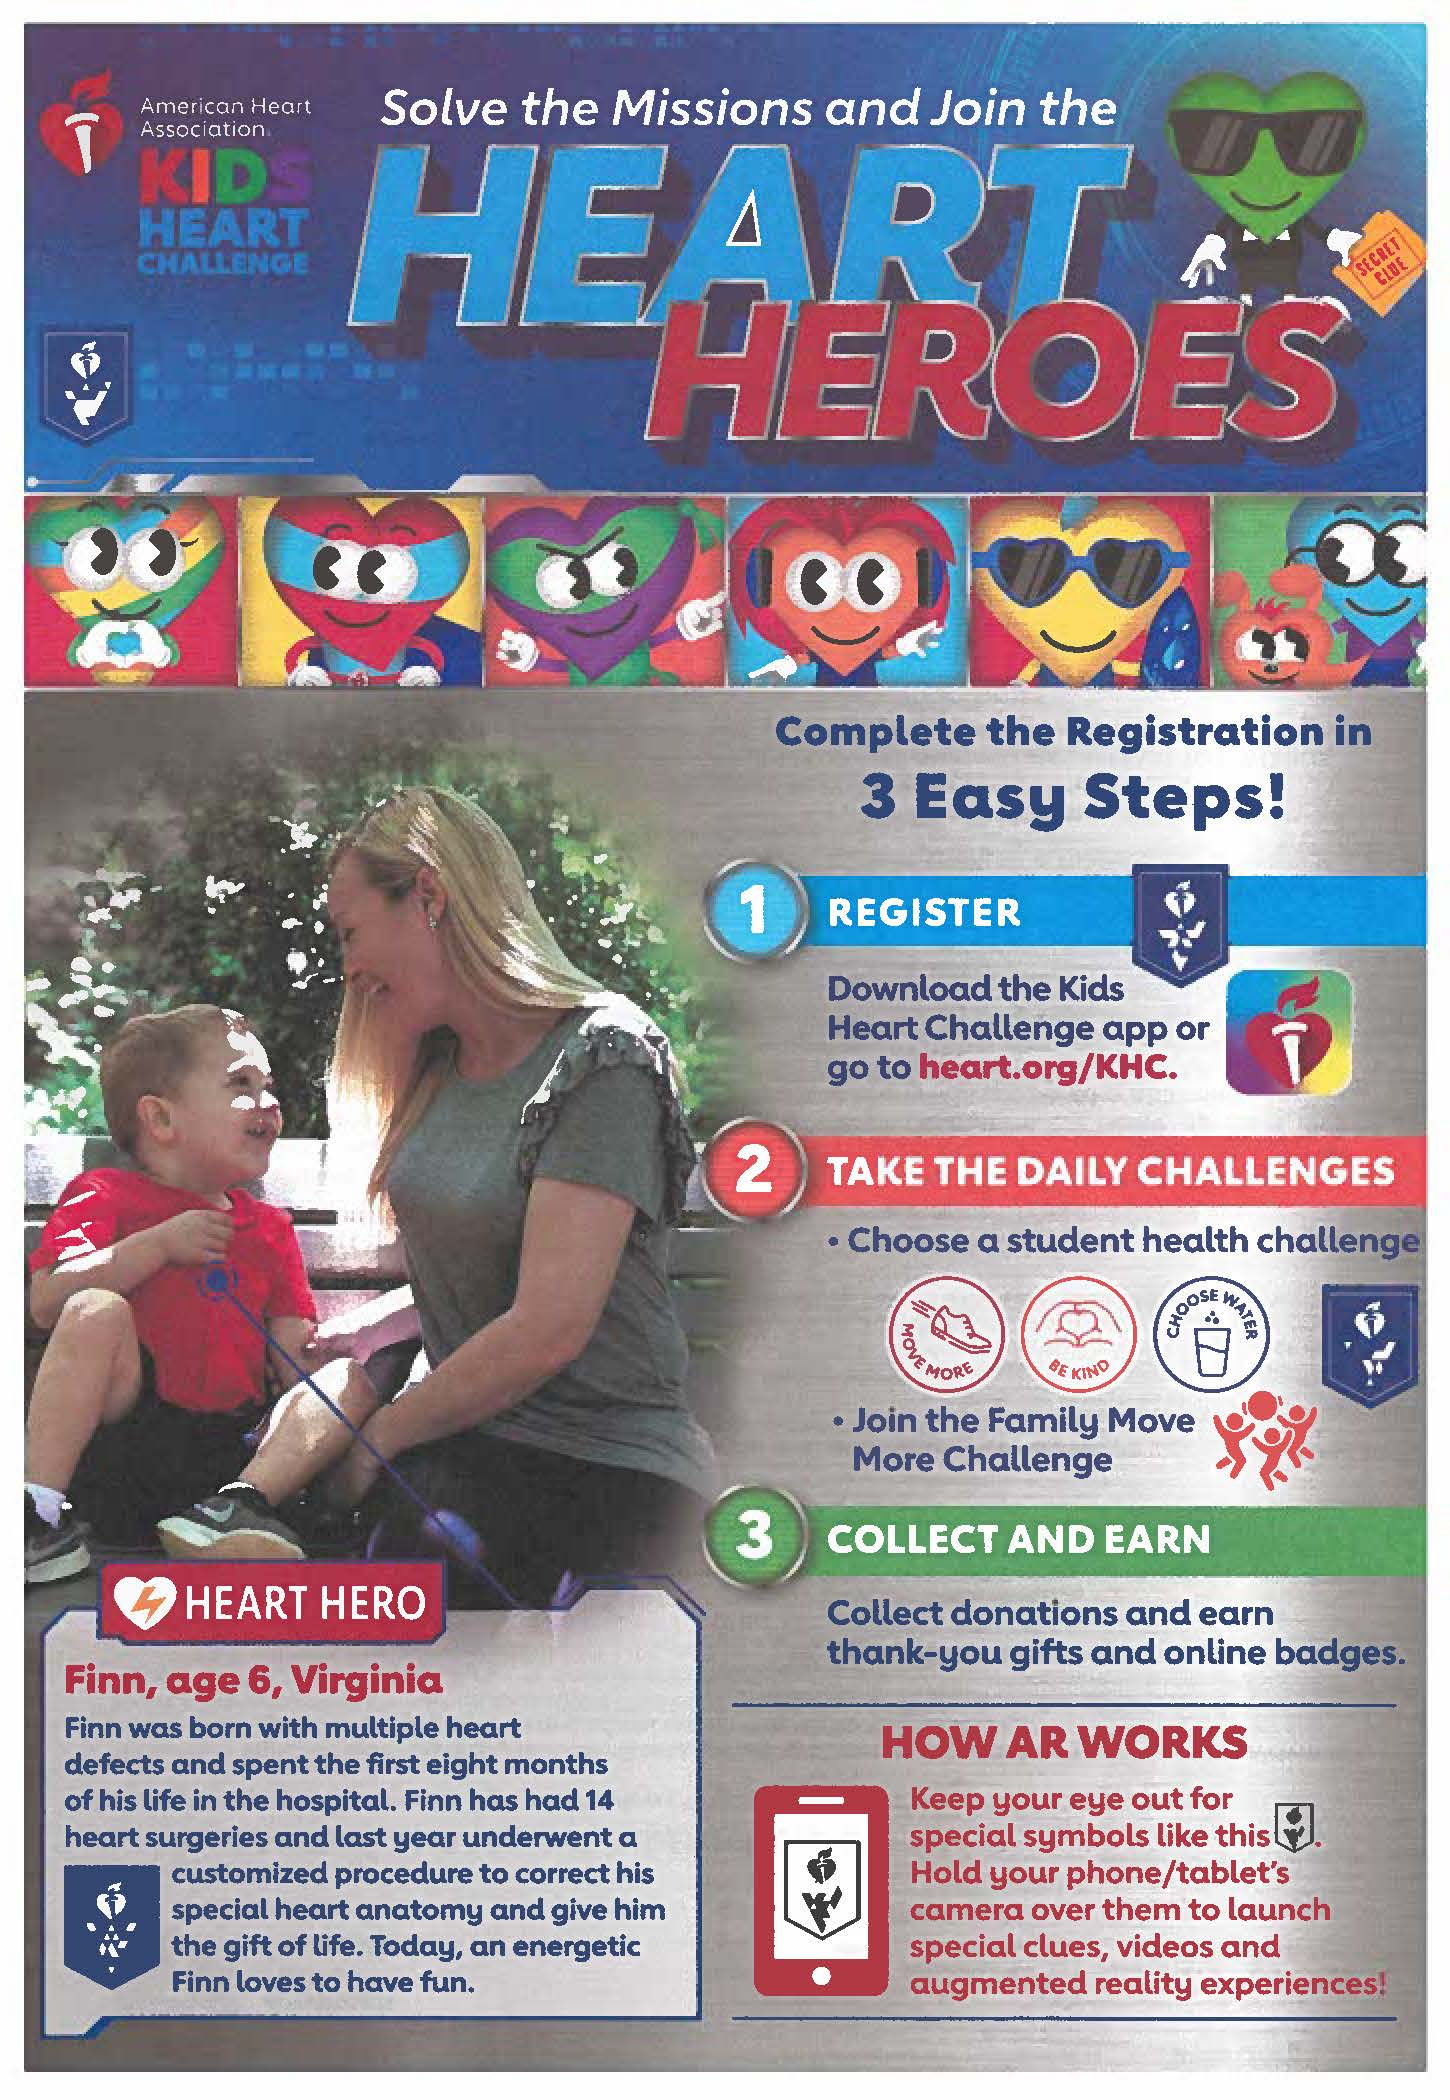 Heart to Hero Campaign flyer